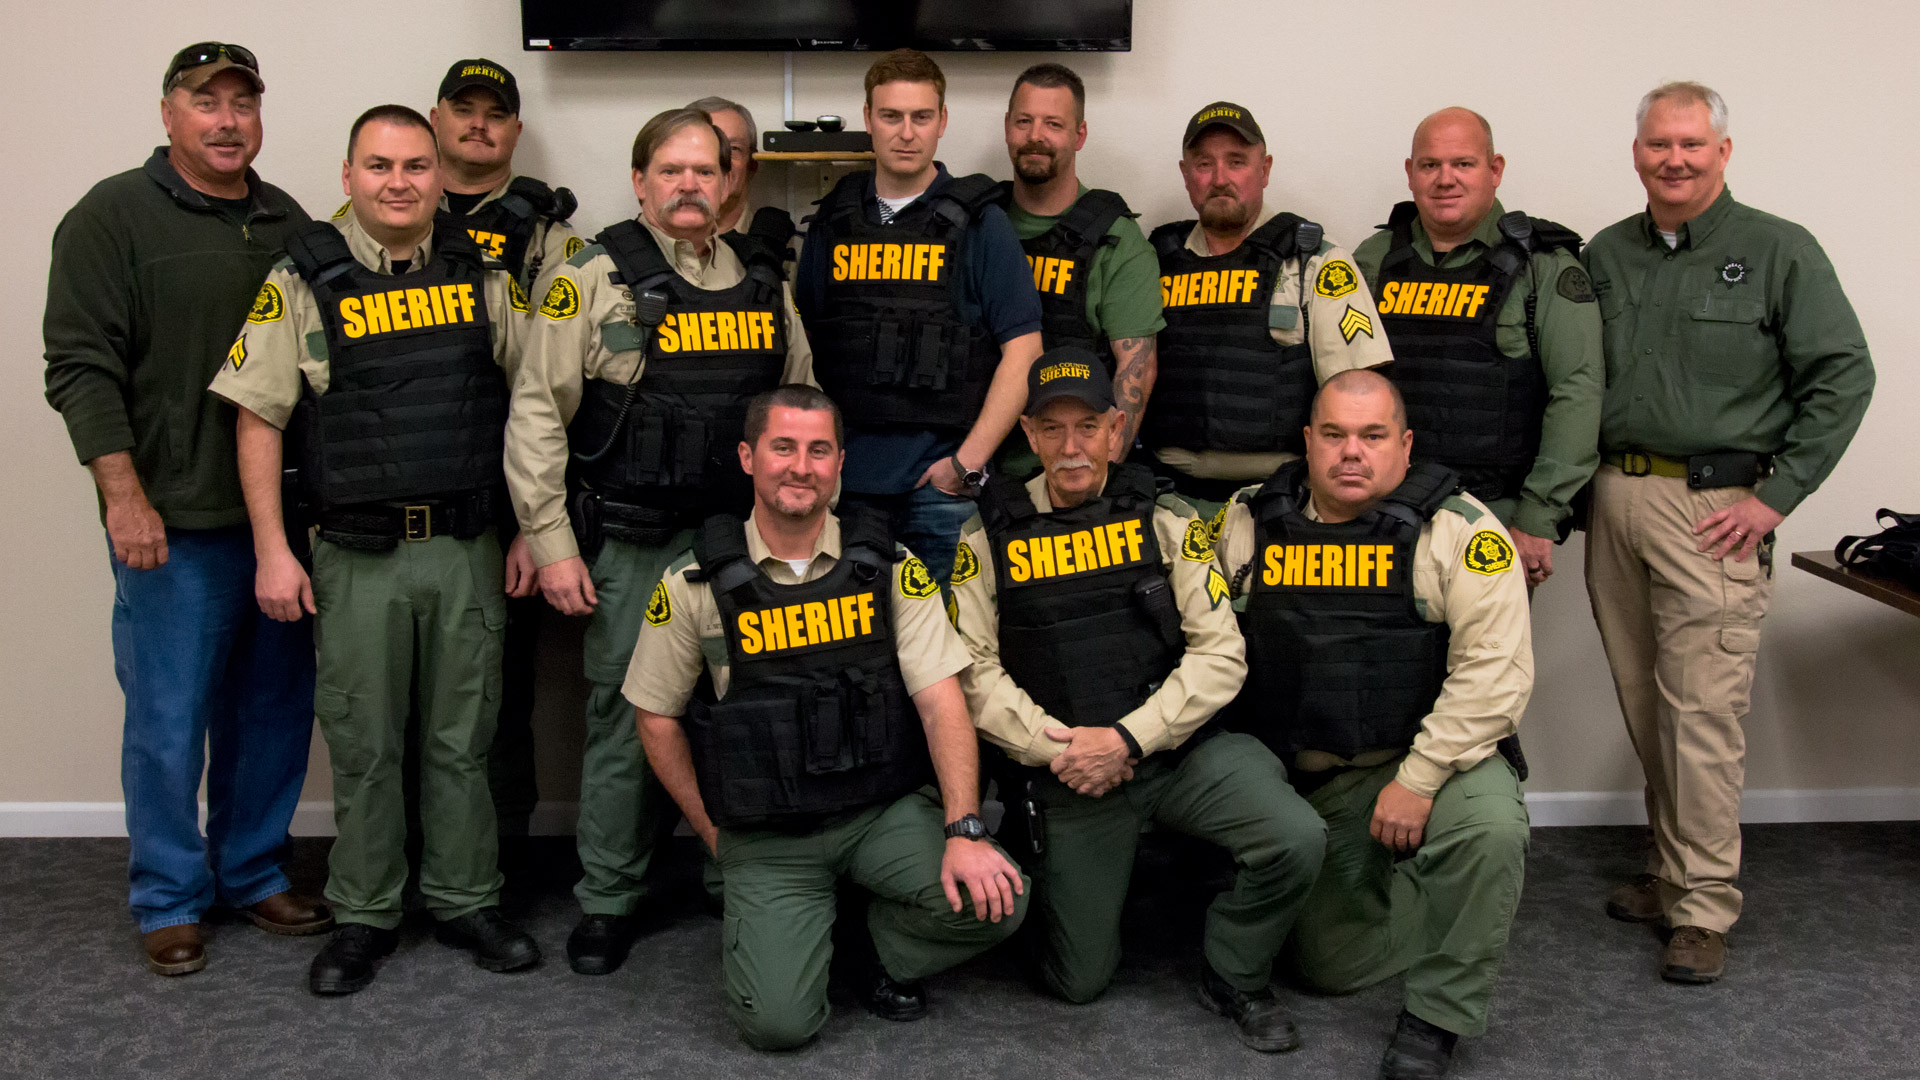 Sheriff's Department receives new Bullet Proof Vests